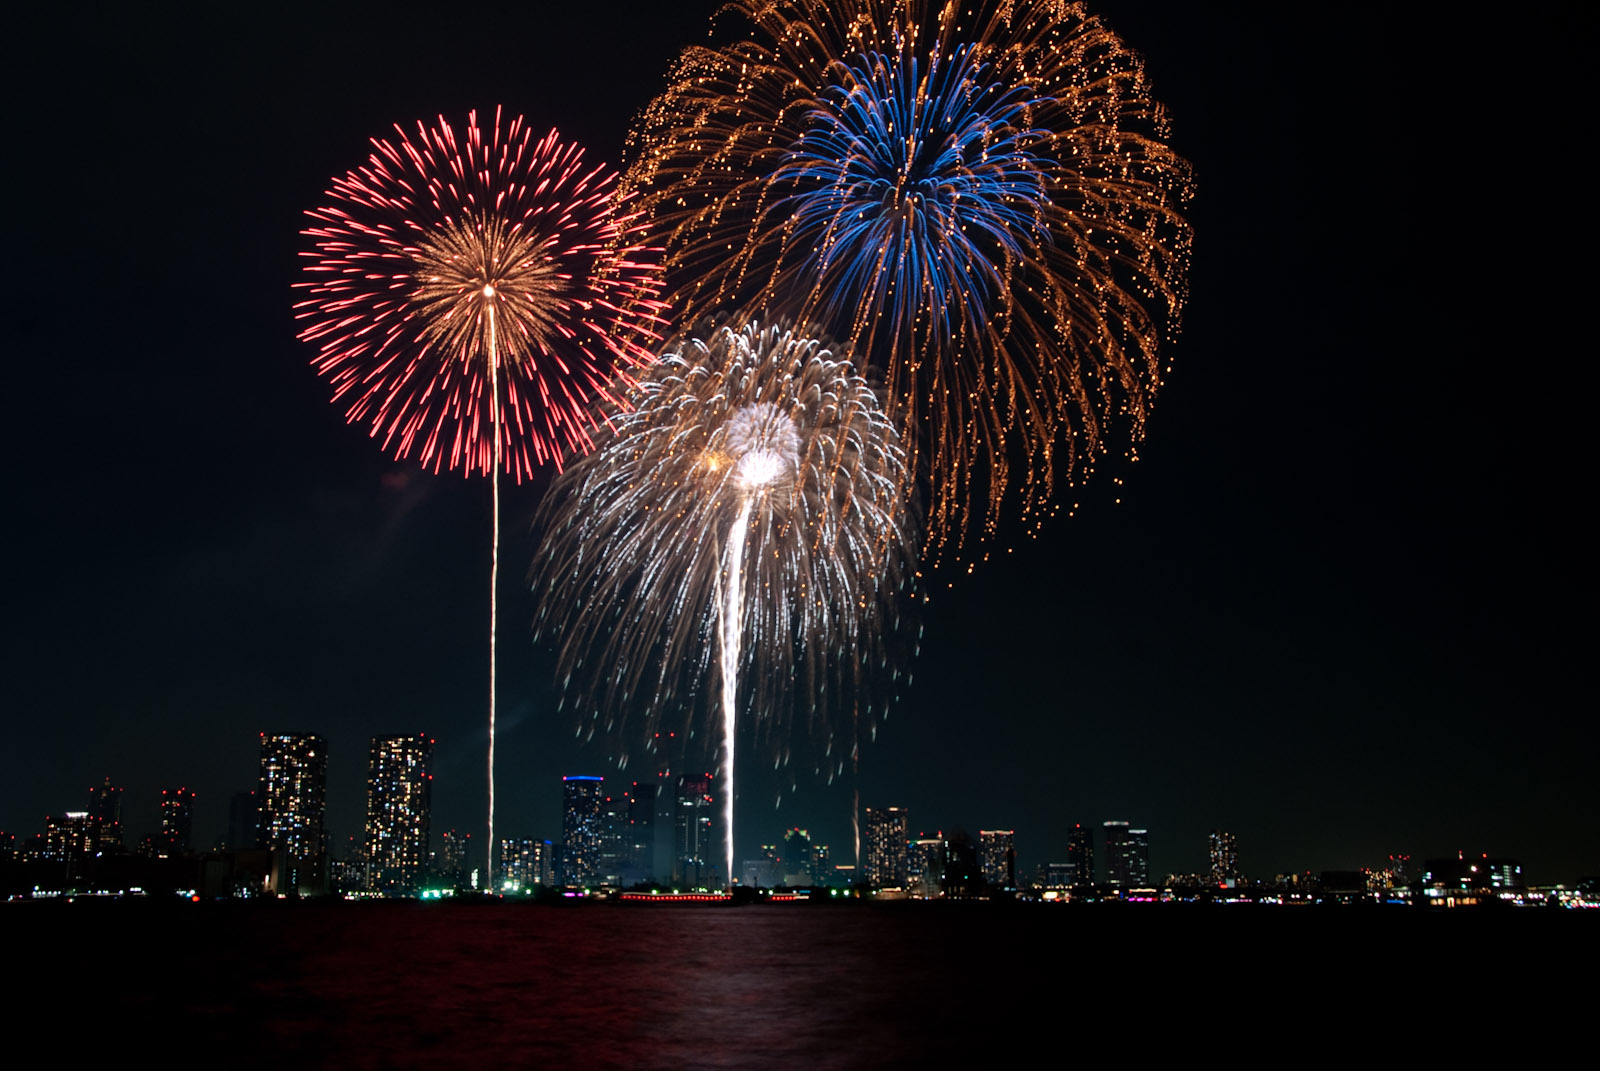 A Dance of Color on the Starry Night Sky, Sumida River Fireworks